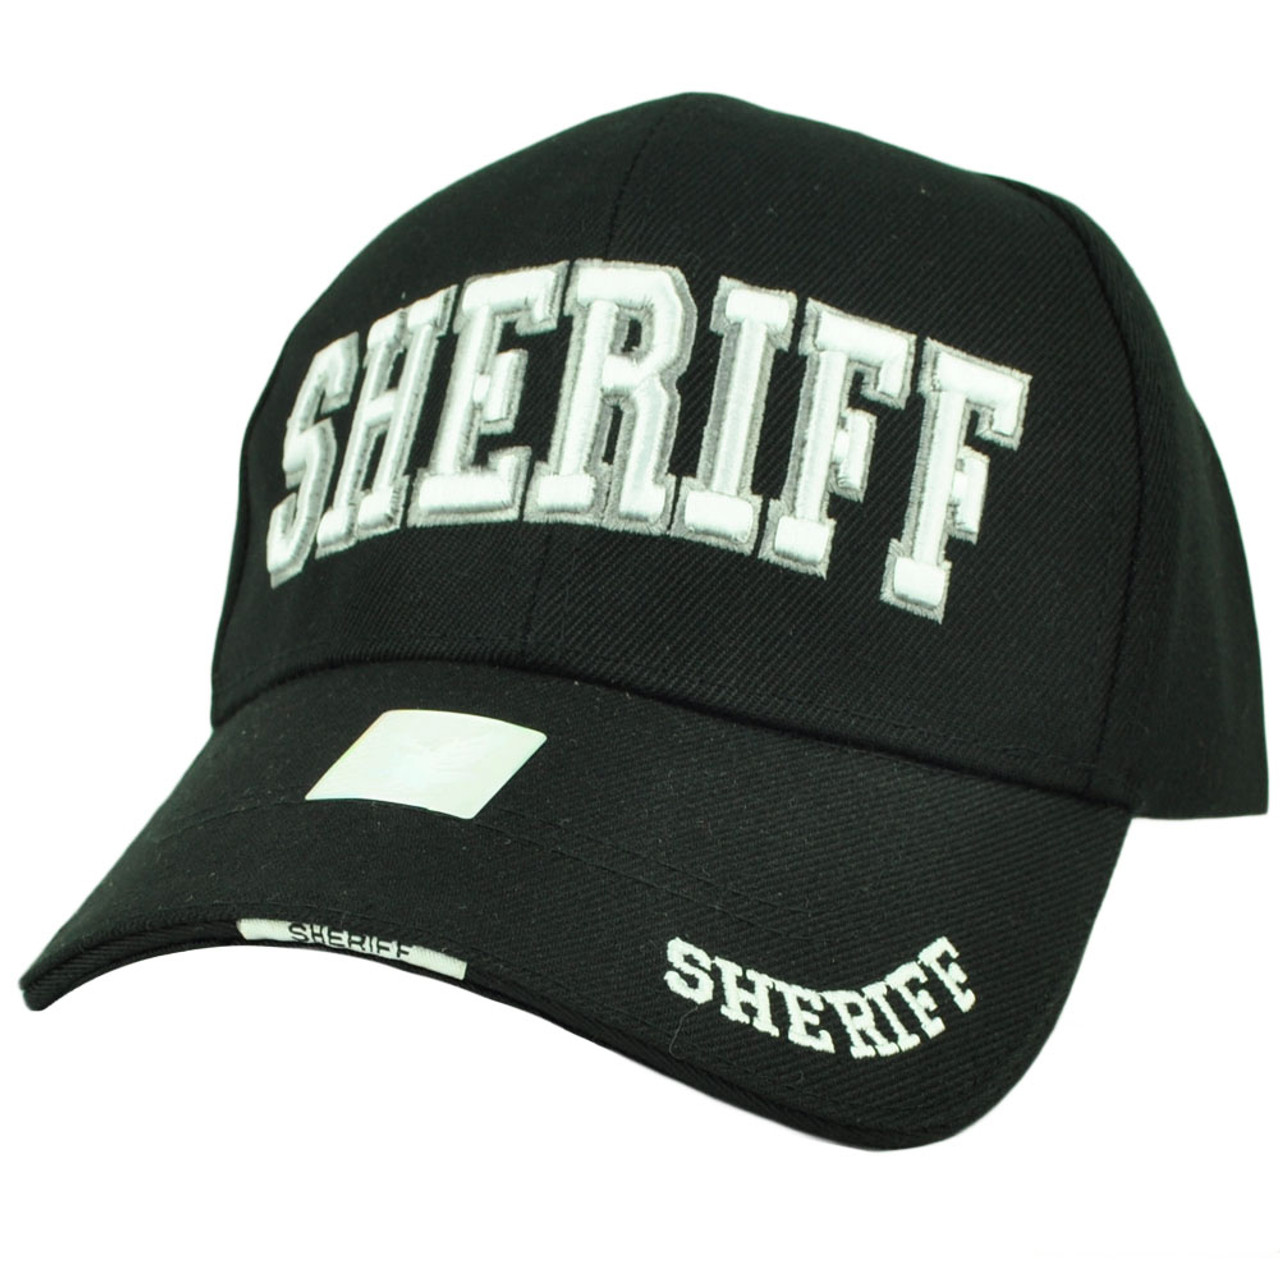 0e8179fc2e9 Sheriff County Deputy Police Law Enforcement Hat Cap Black Curved Bill  Adjustable - Cap Store Online.com